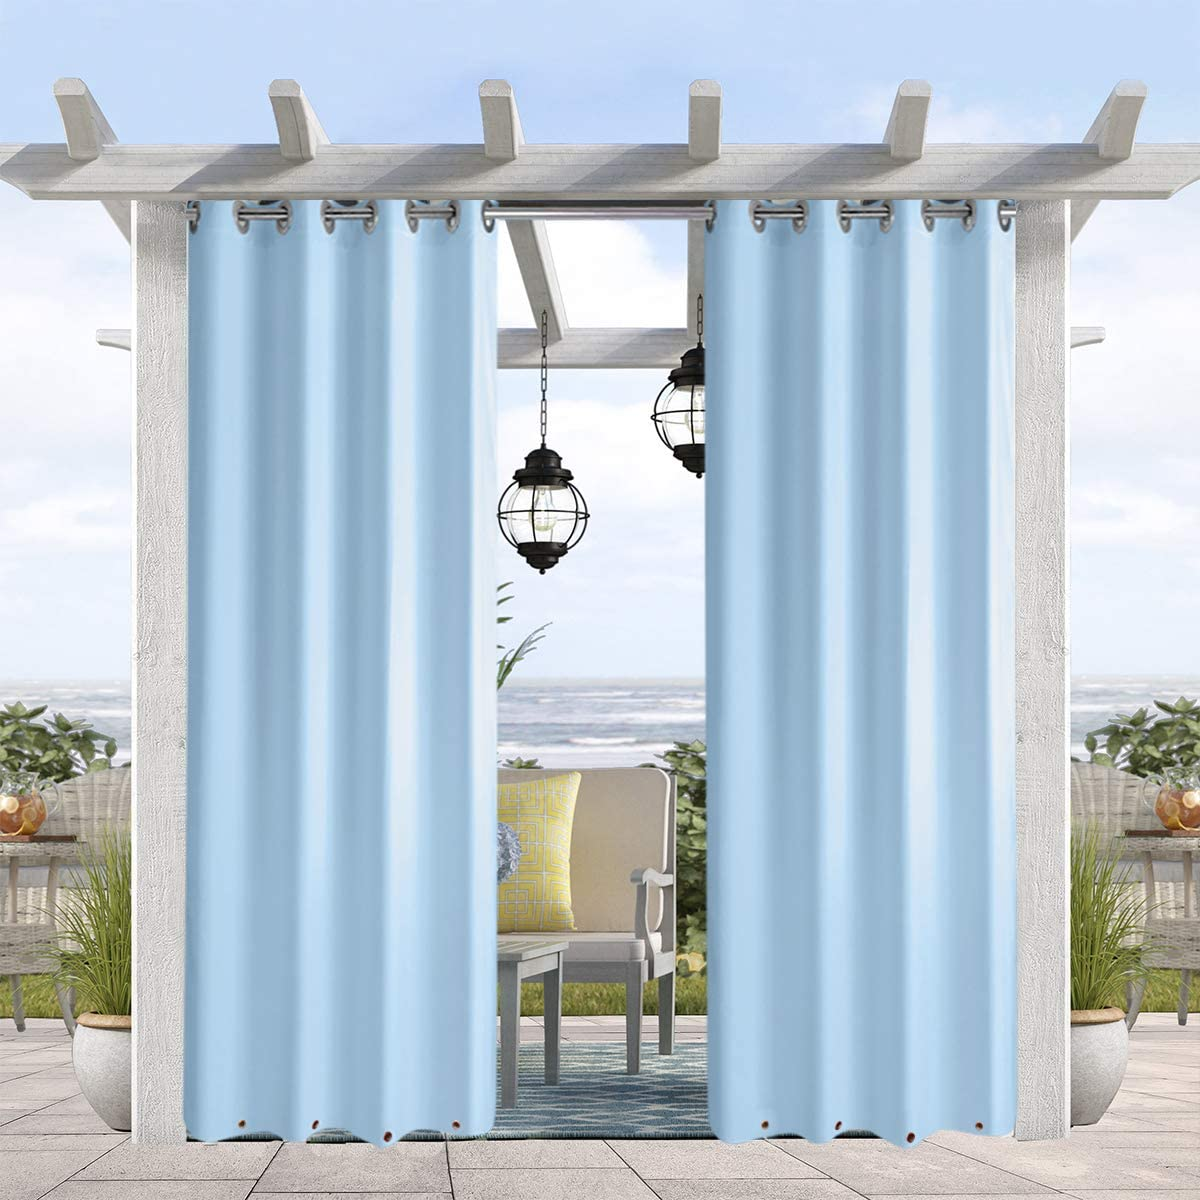 pro space 8 panels indoor outdoor curtains grommet curtain on top and bottom 50 x 84